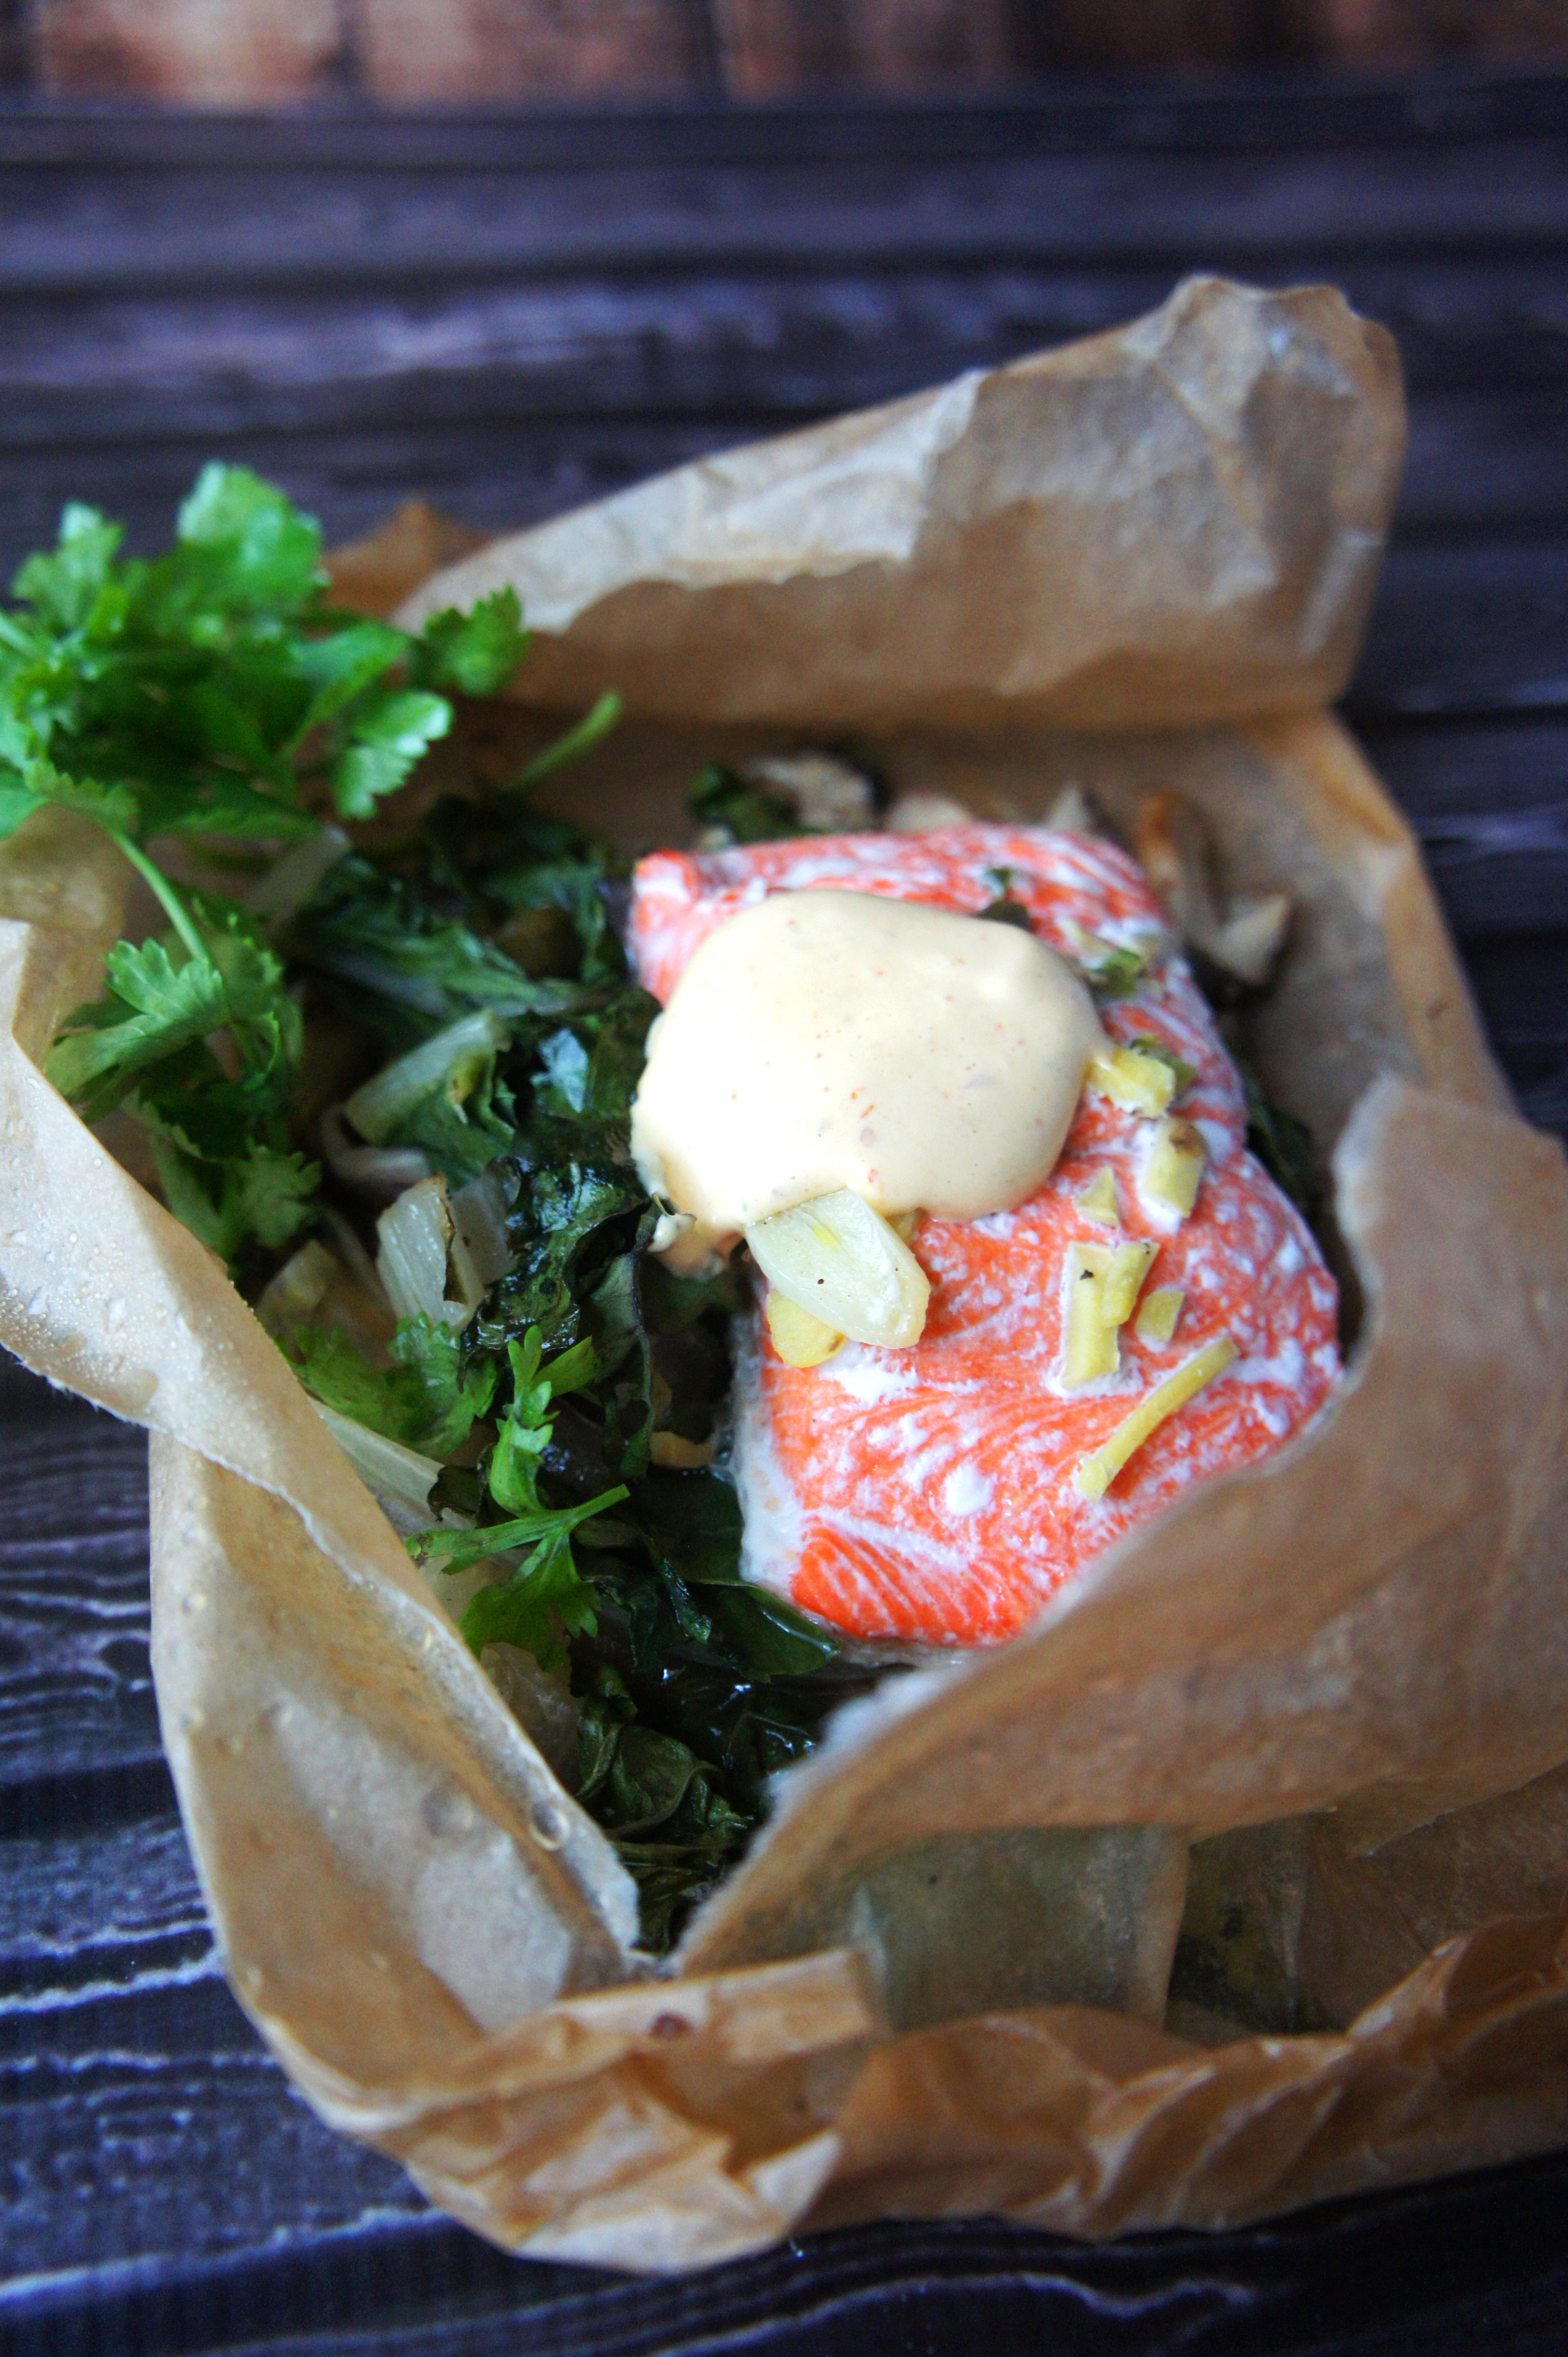 Salmon in Parchment with Shiitake Mushrooms, Swiss Chard, & Sriracha Aioli